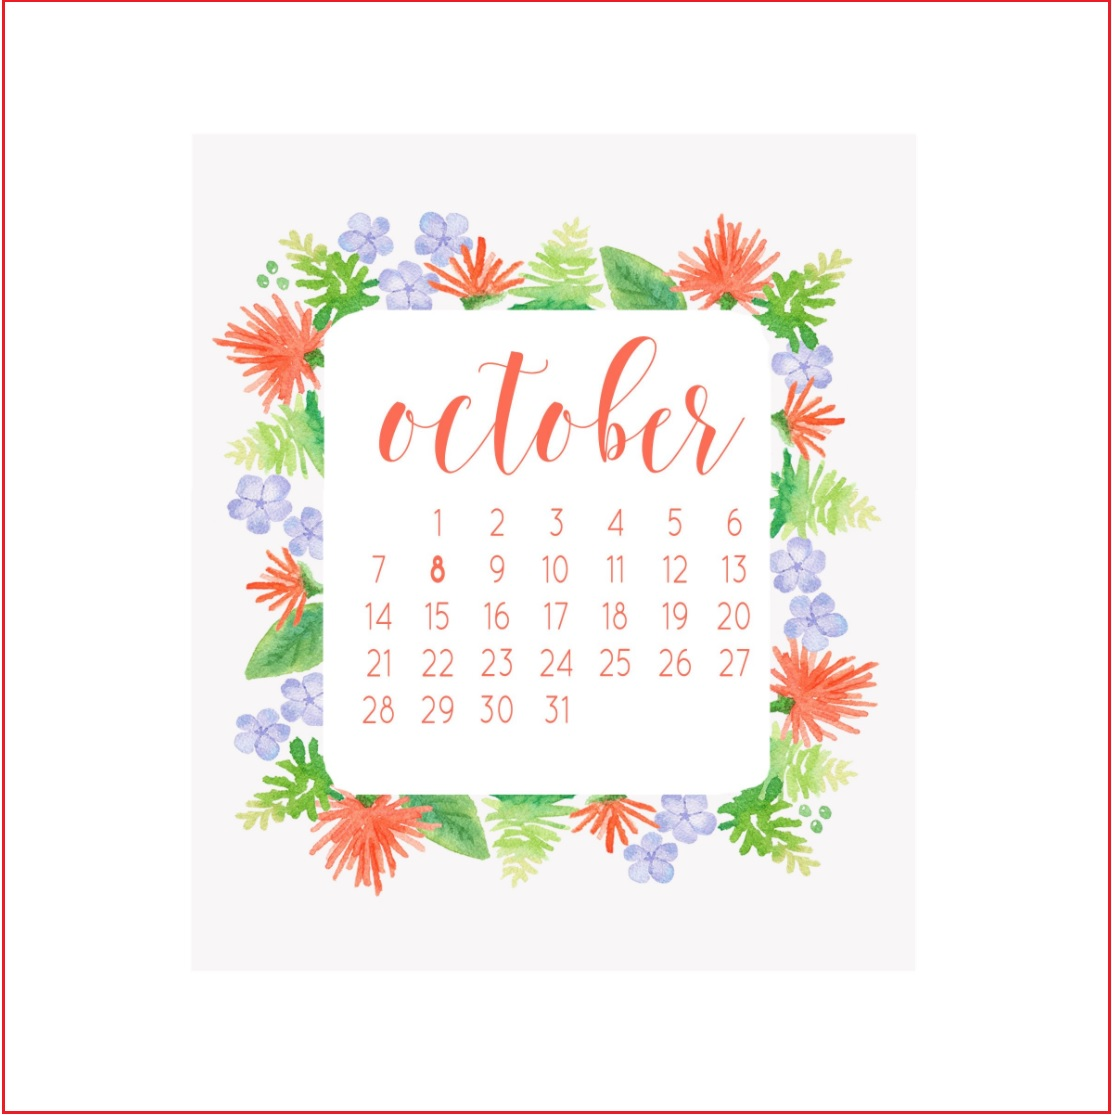 Beautiful October 2018 Calendar For Office